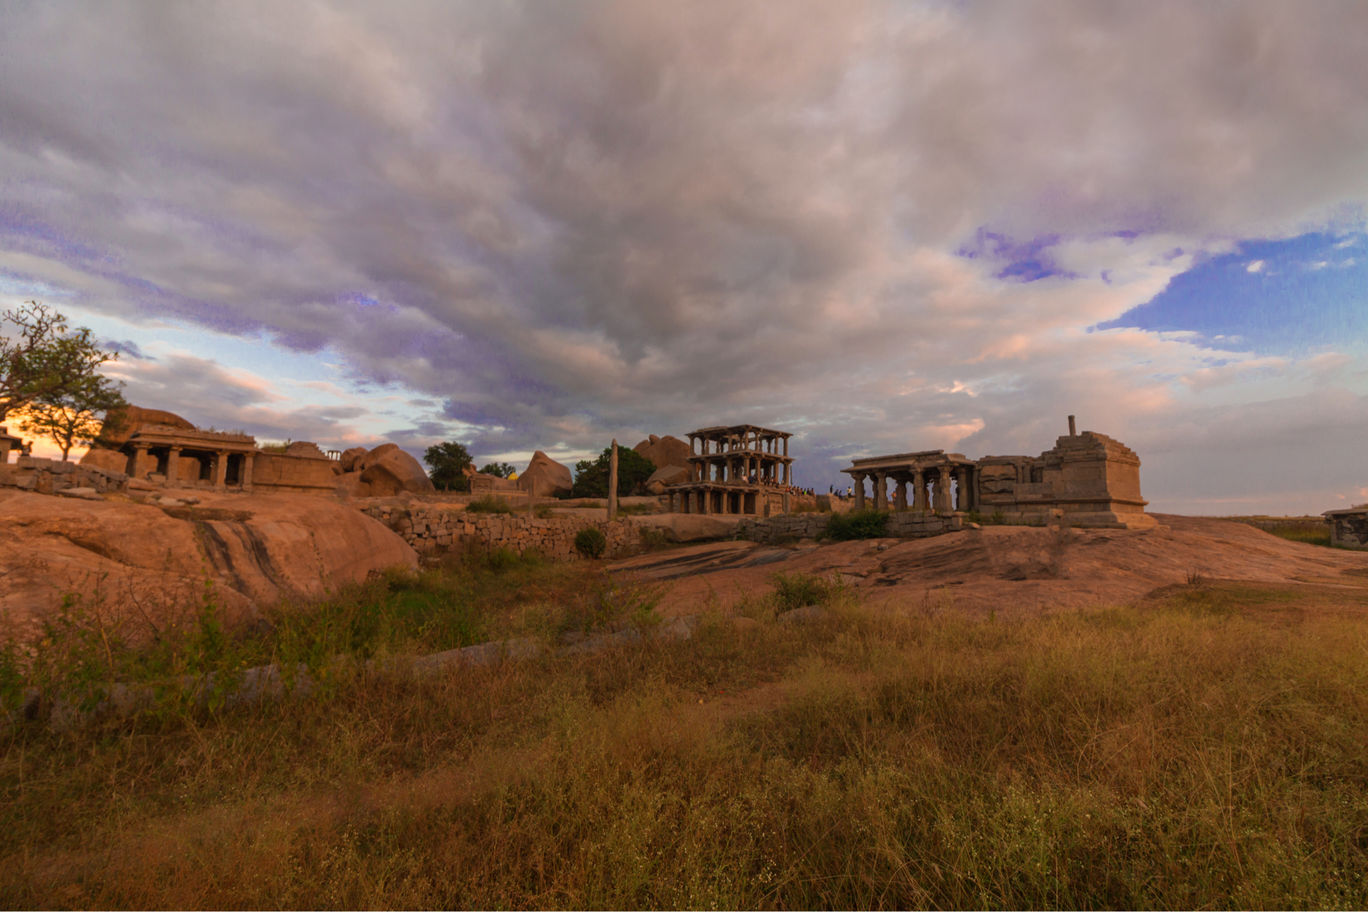 Photo of Exploring Hampi By Hawin Printo C